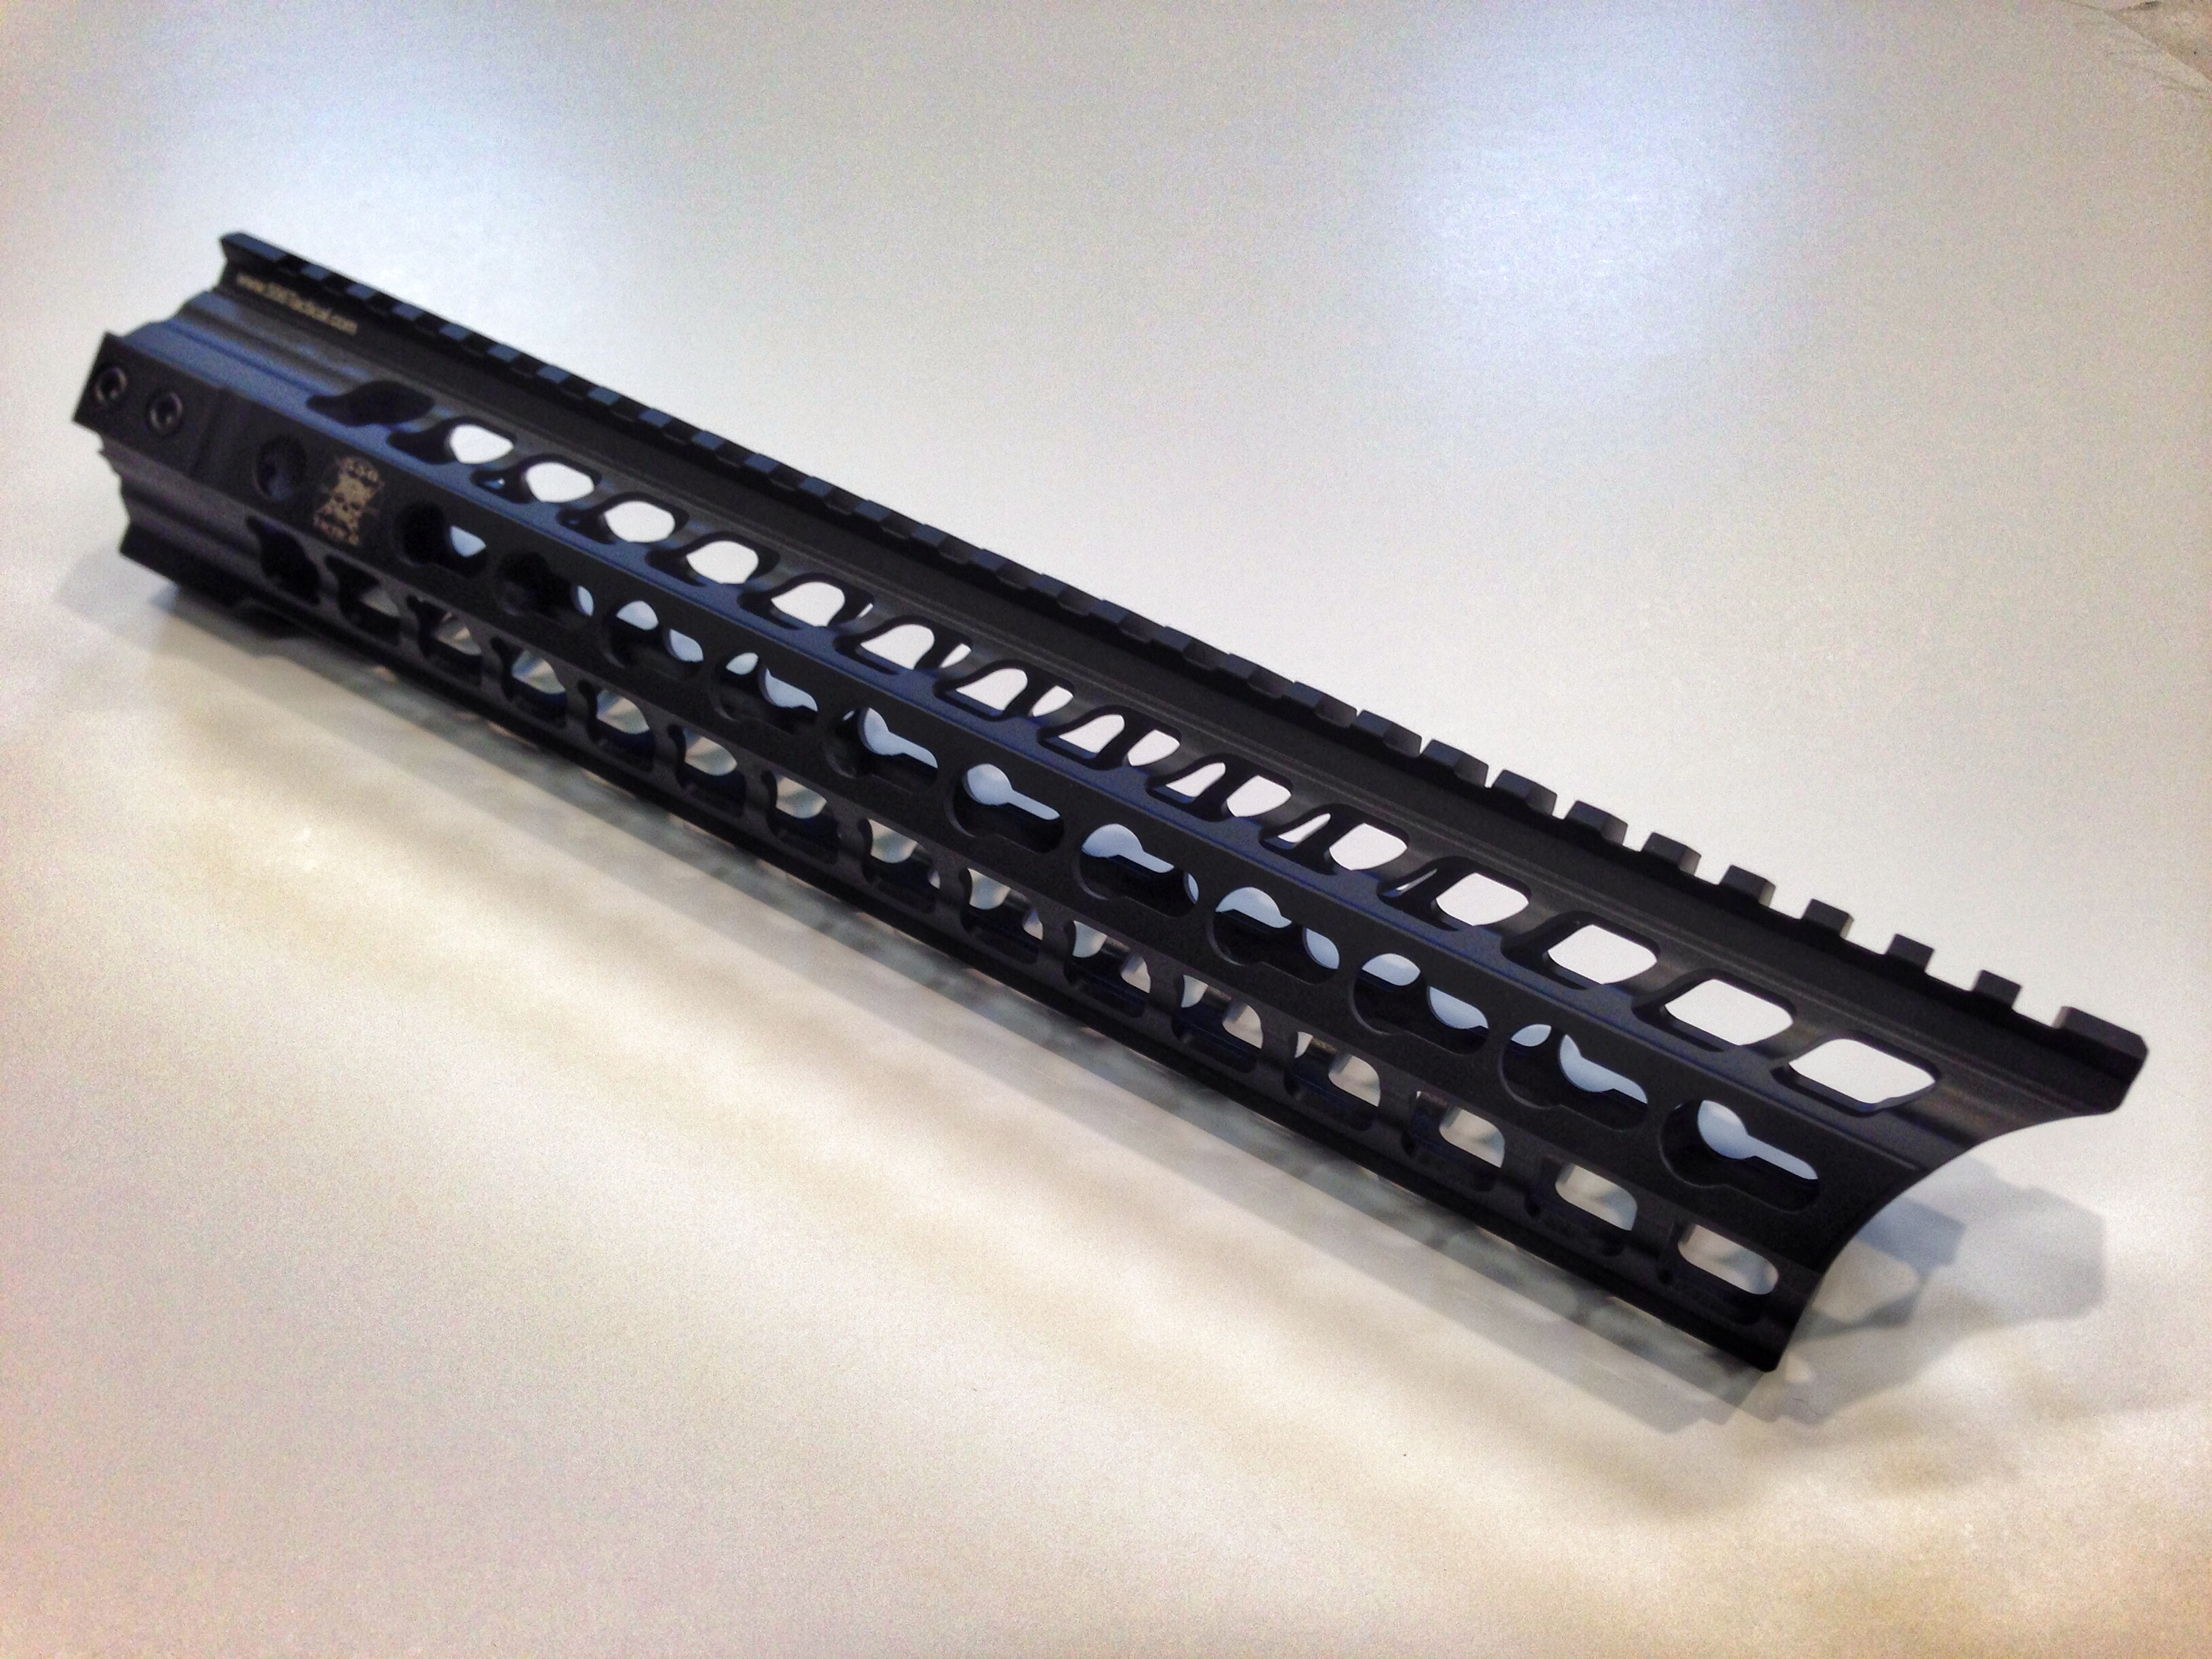 556 Tactical KEYMOD Stryke Rail Series 12.1 inches